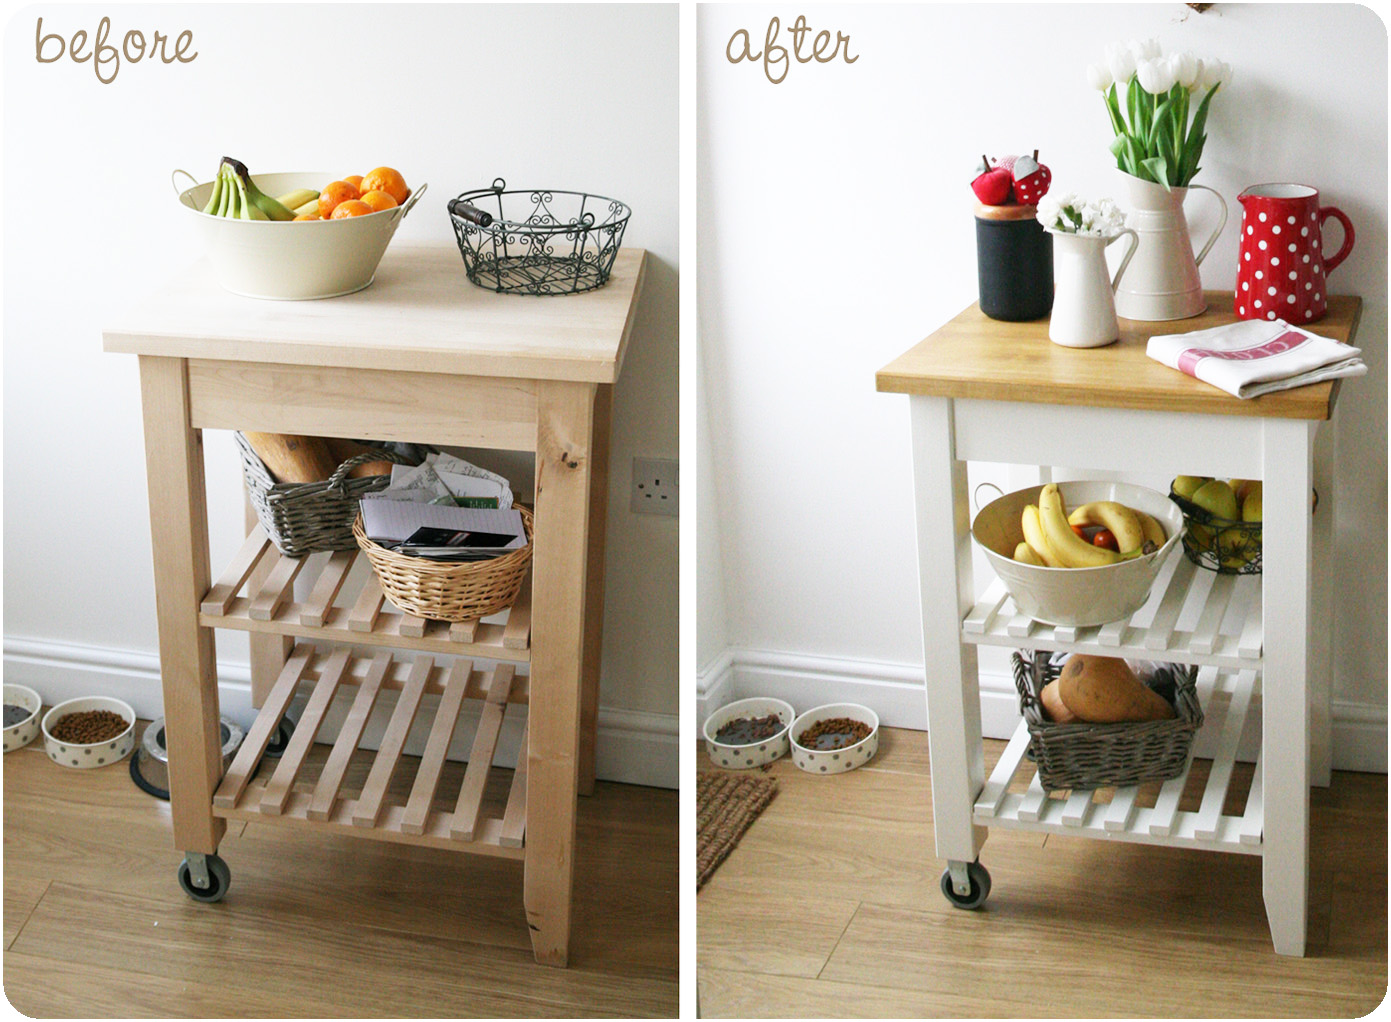 Countrykitty trolley makeover all tea towels review - Carrelli per cucina ikea ...